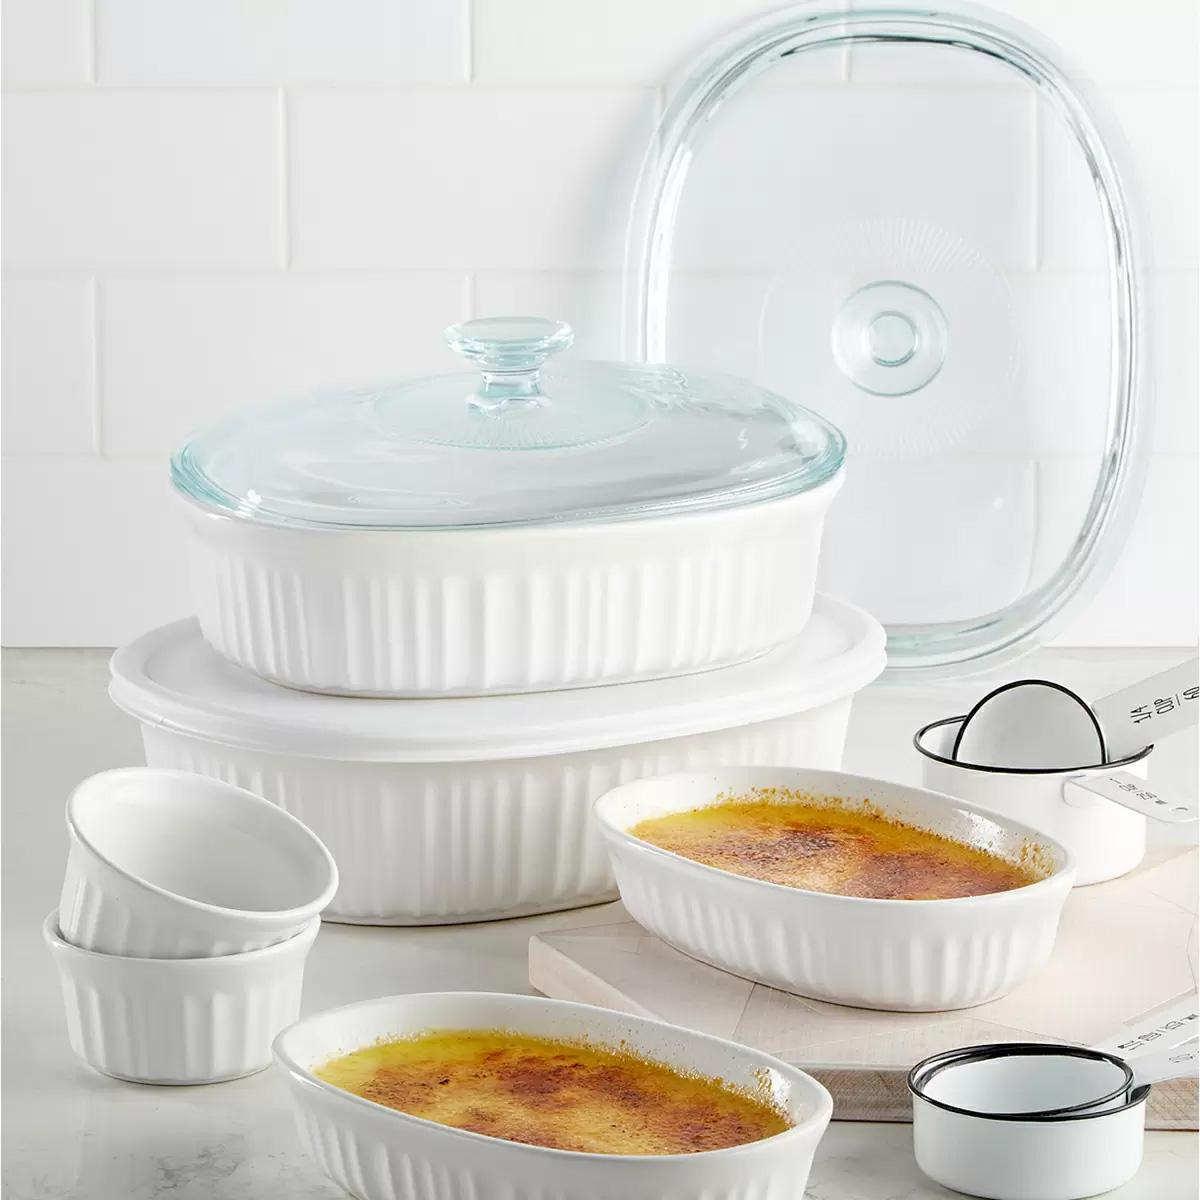 10-Piece Corningware French White Bakeware Set for $29.99 Shipped